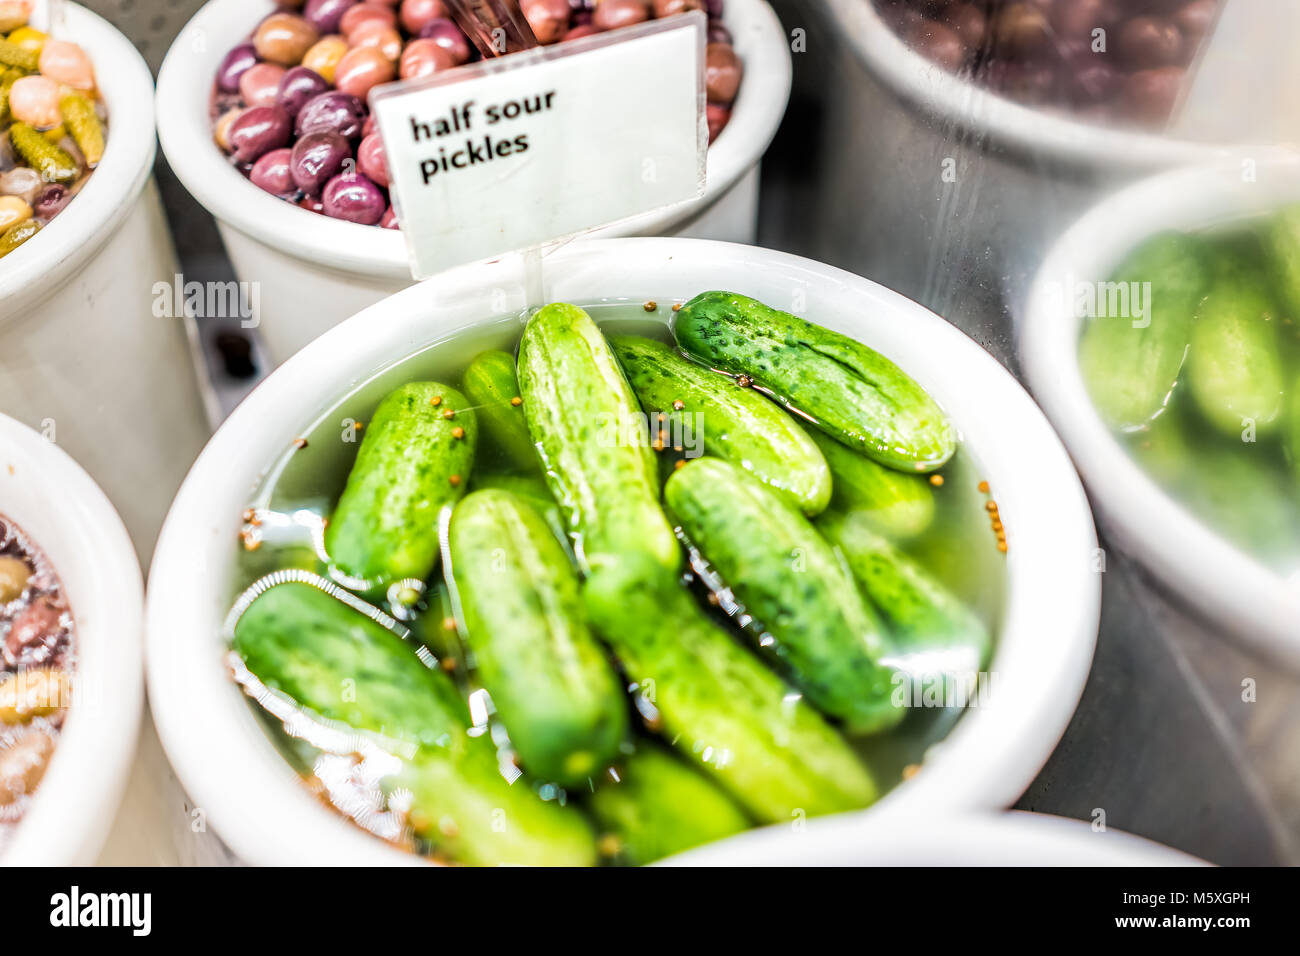 Closeup of plastic container jar filled with bulk green half sour pickles, mustard seeds in vinegar brine, sign - Stock Image